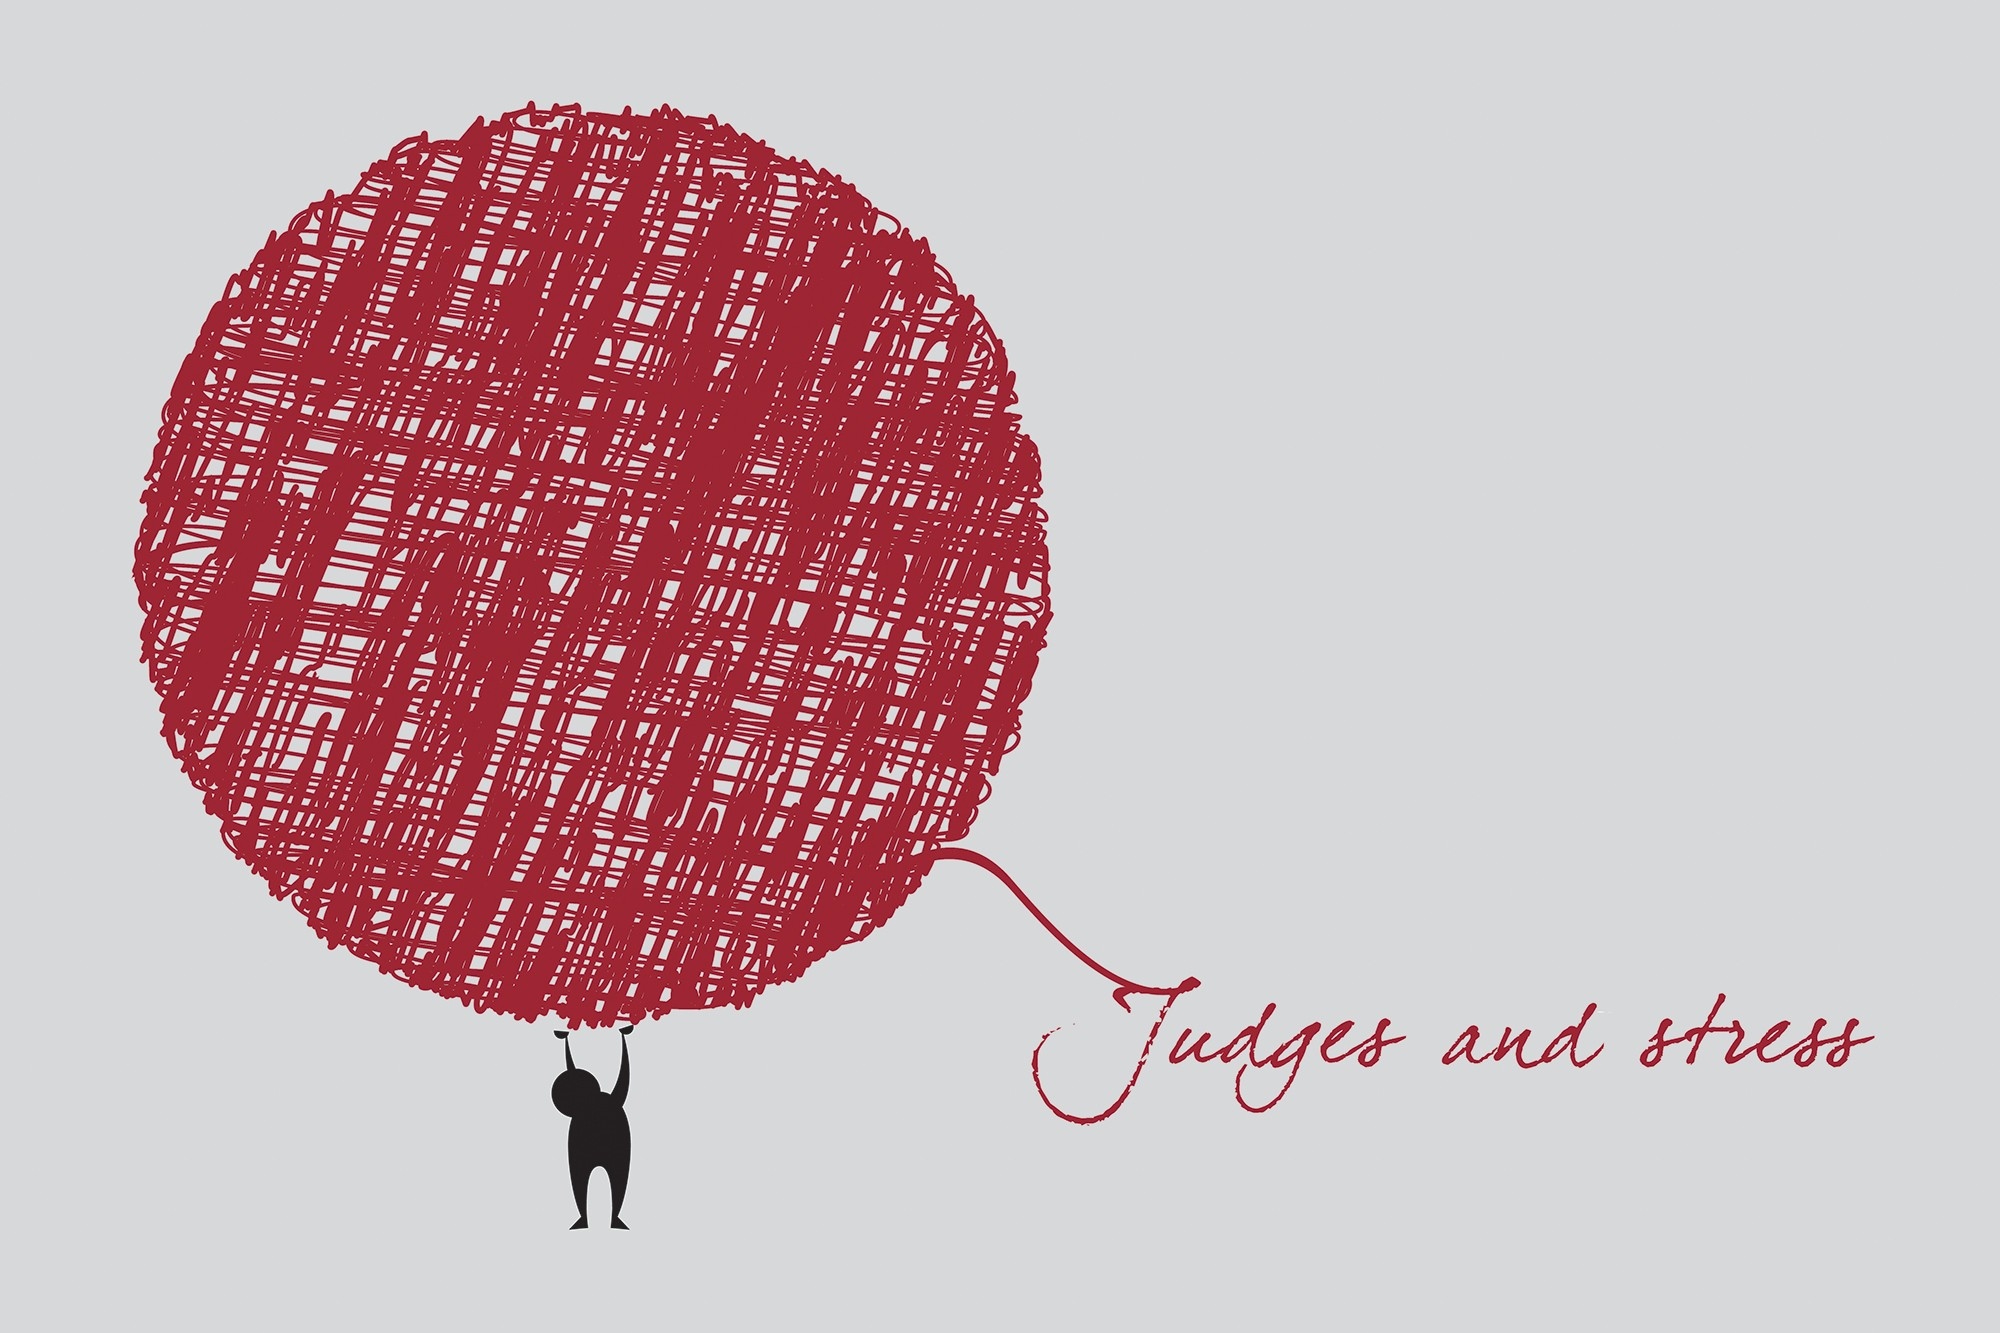 Judges and Stress written with string unraveling from ball of yarn